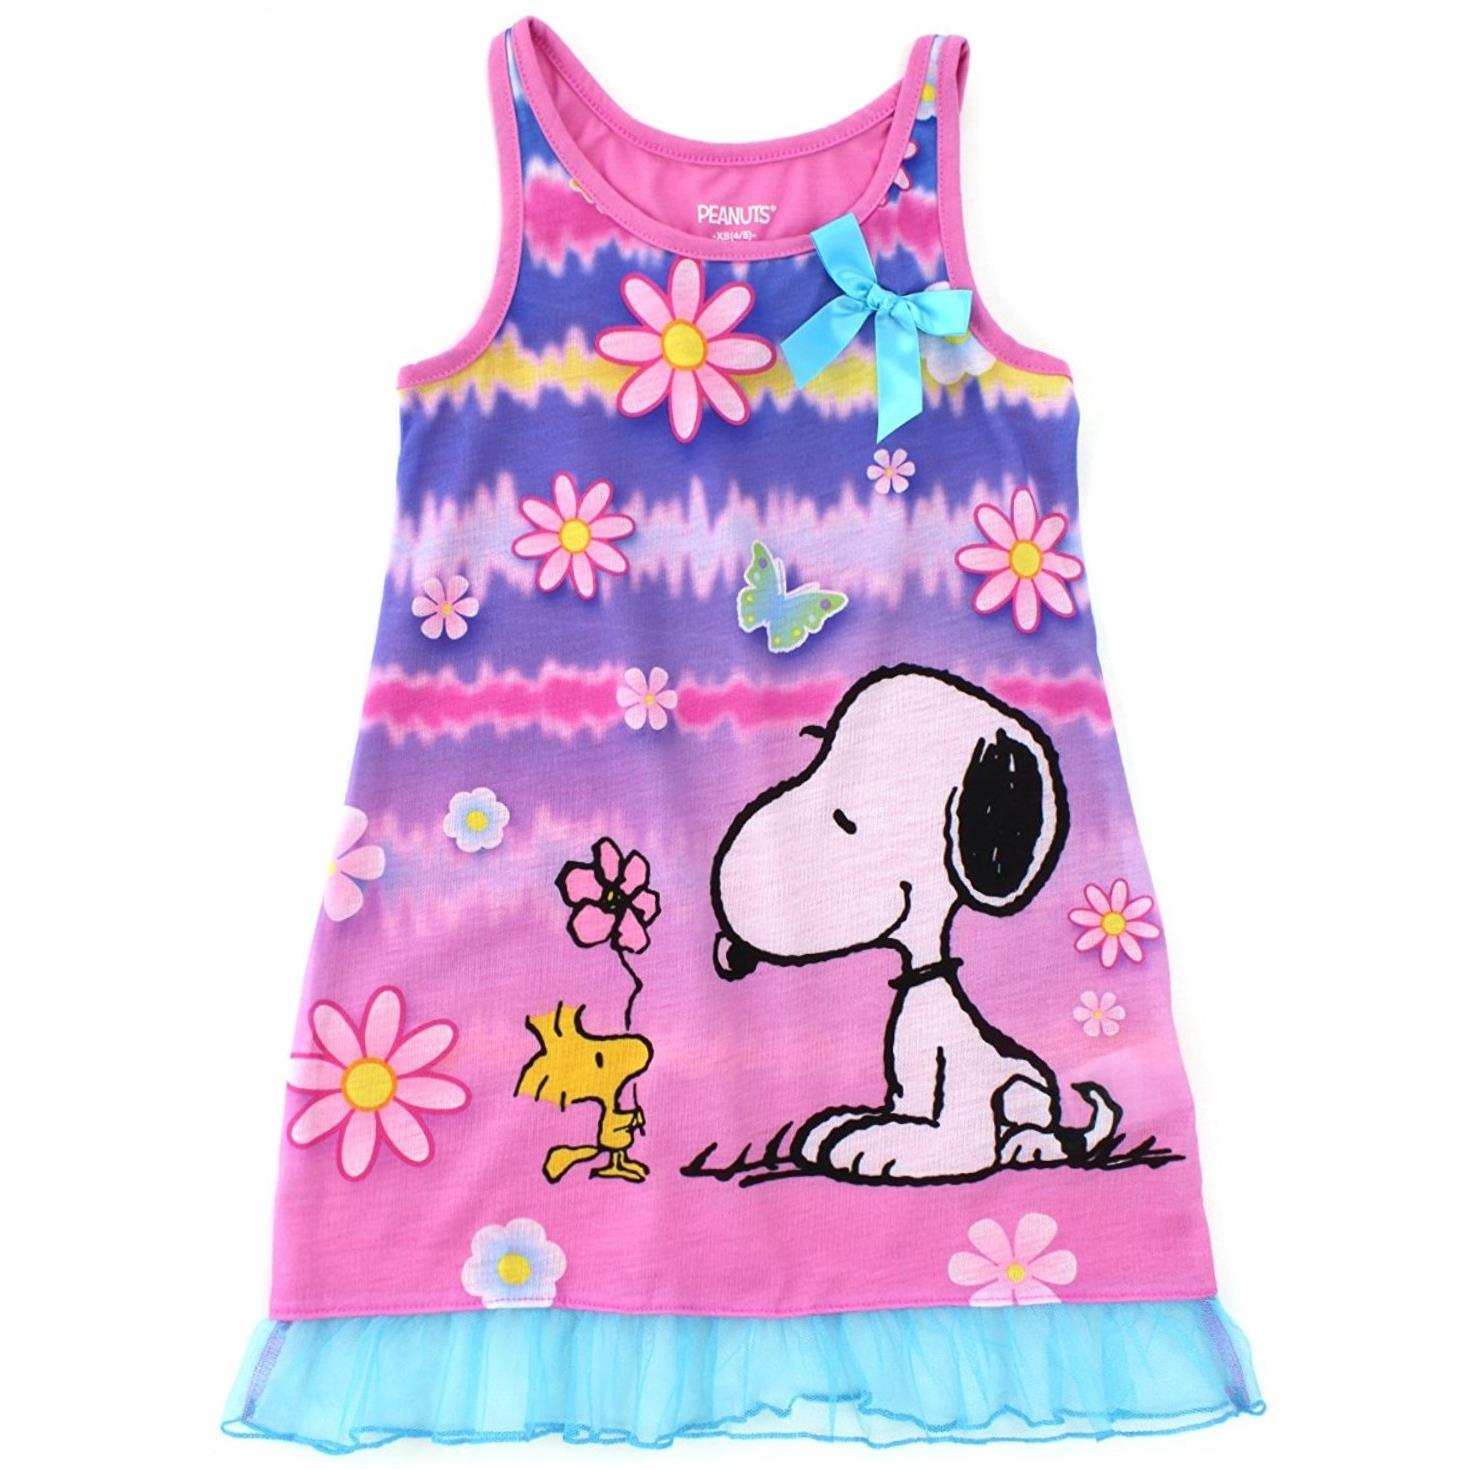 Peanuts Snoopy Girls Pink Poly Nightgown Pajamas